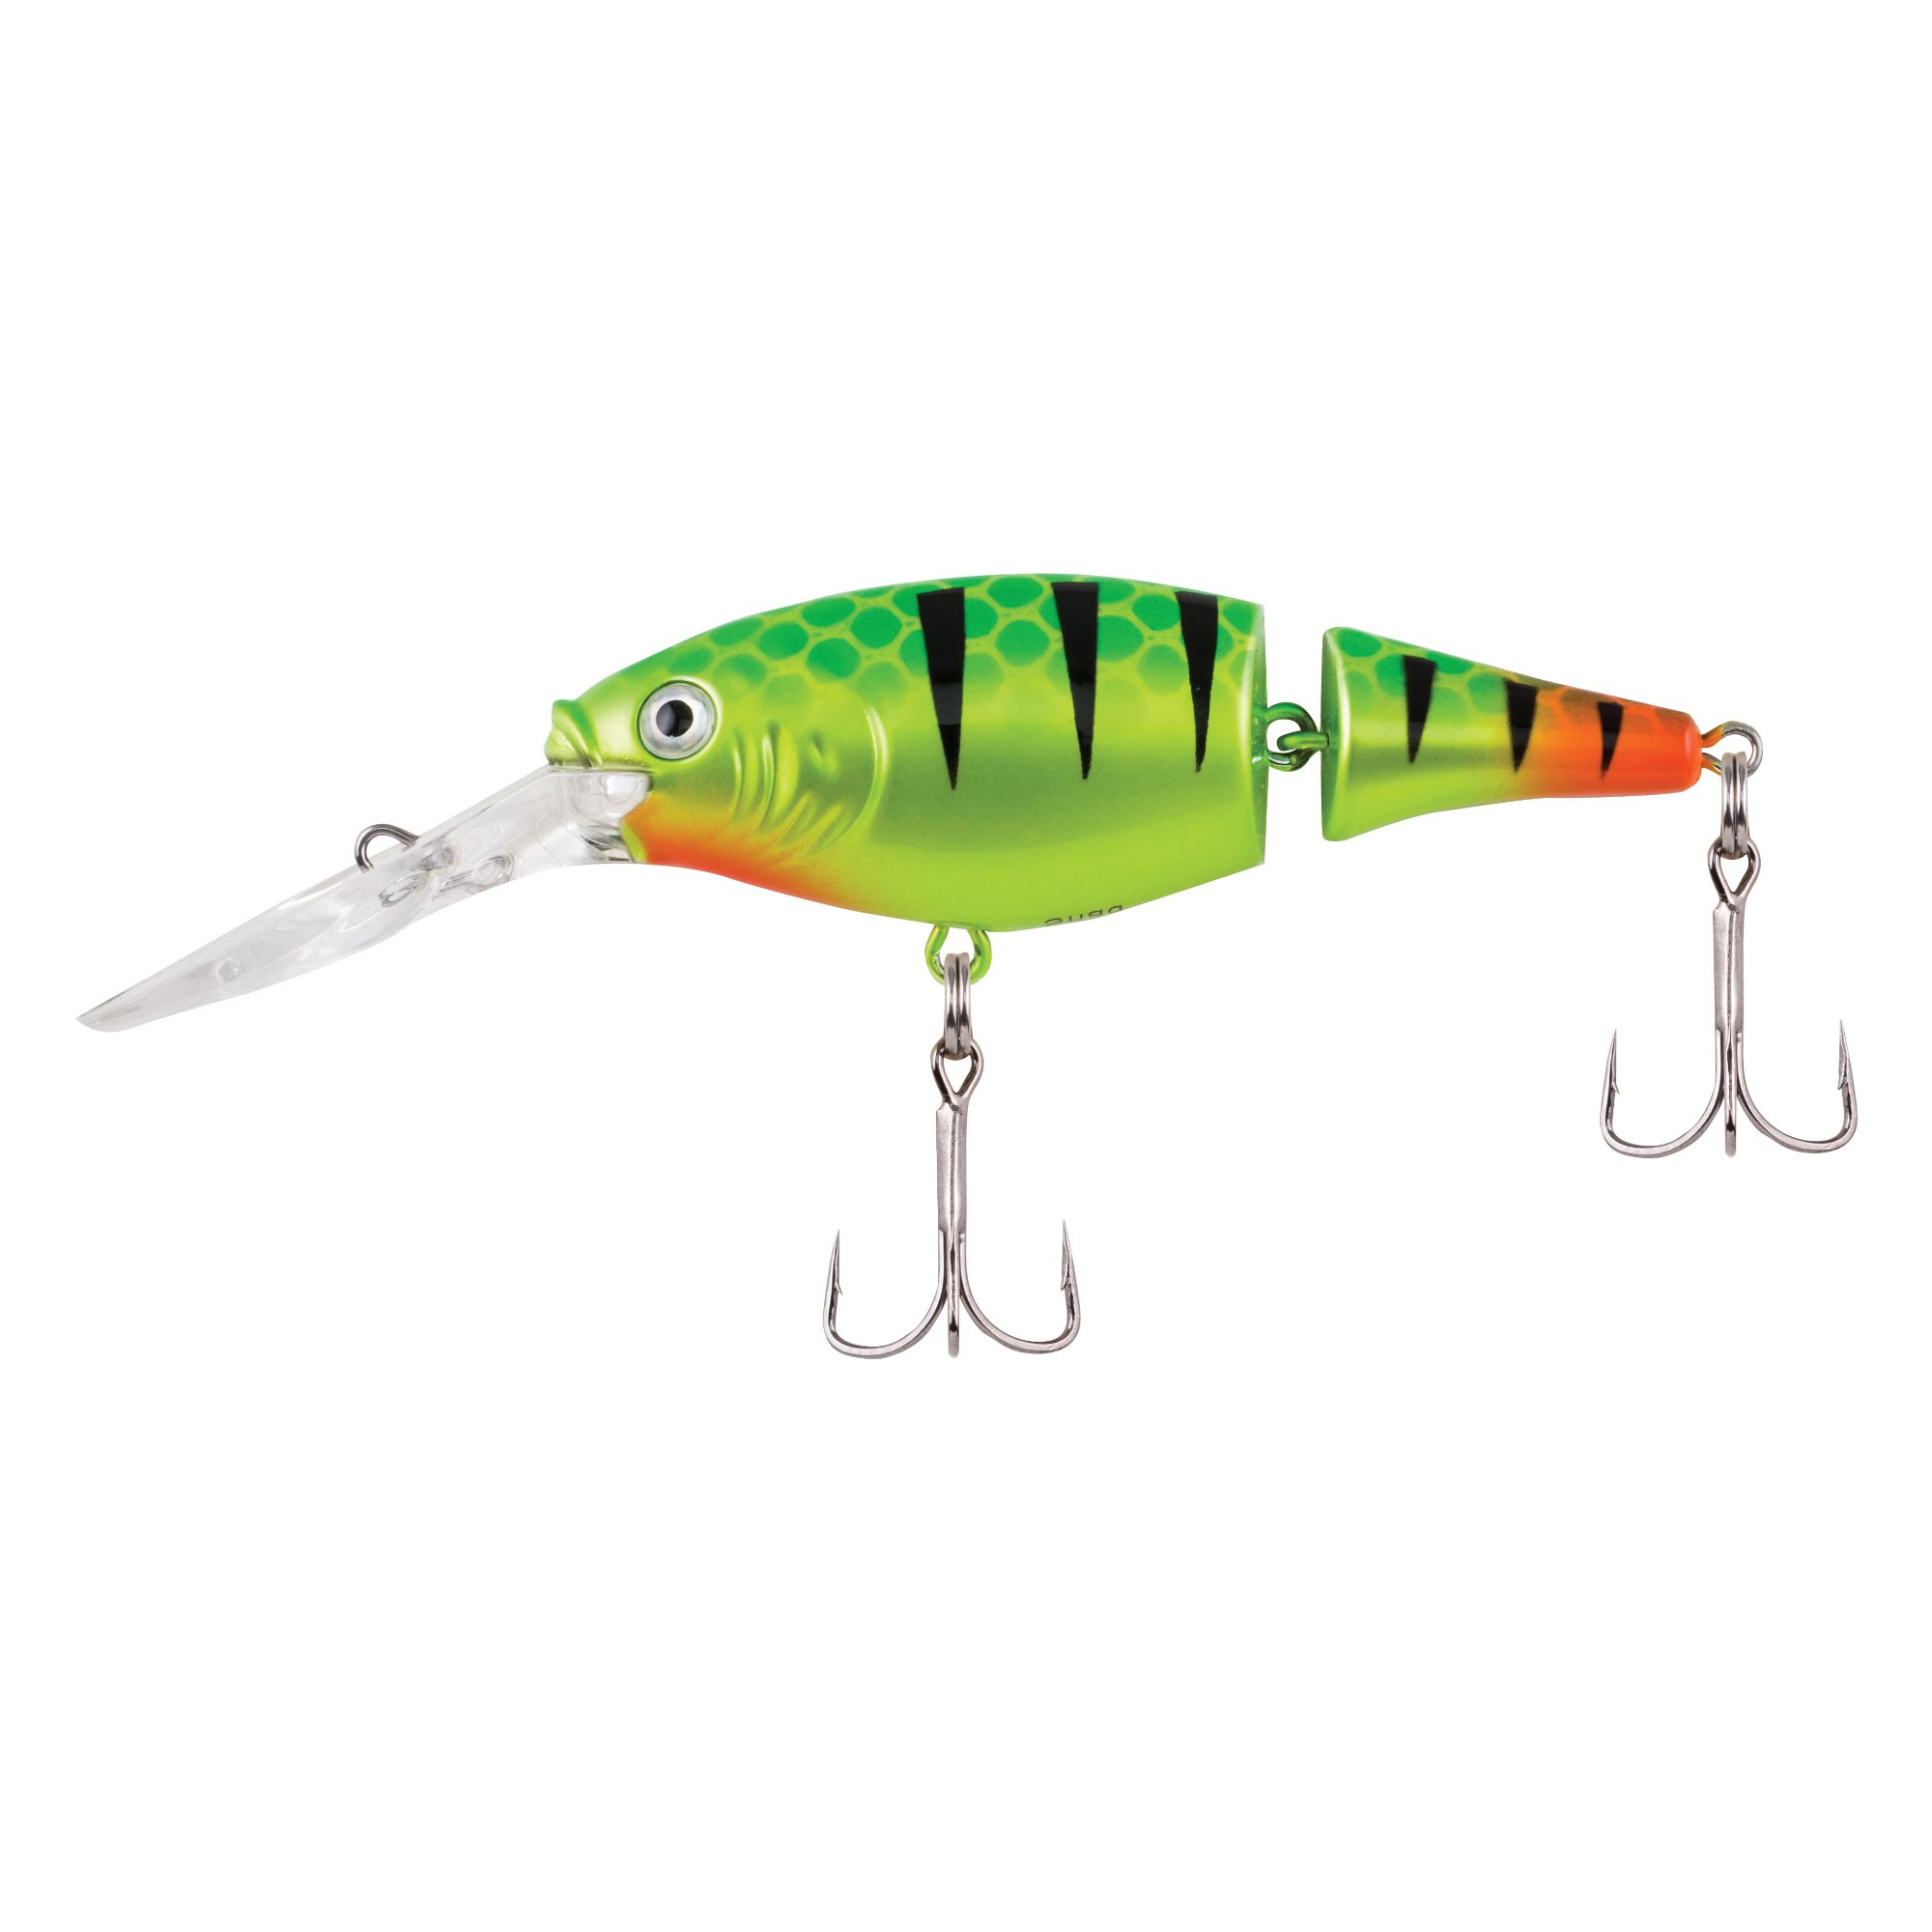 Berkley Flicker Shad J.F.R. anti freeze